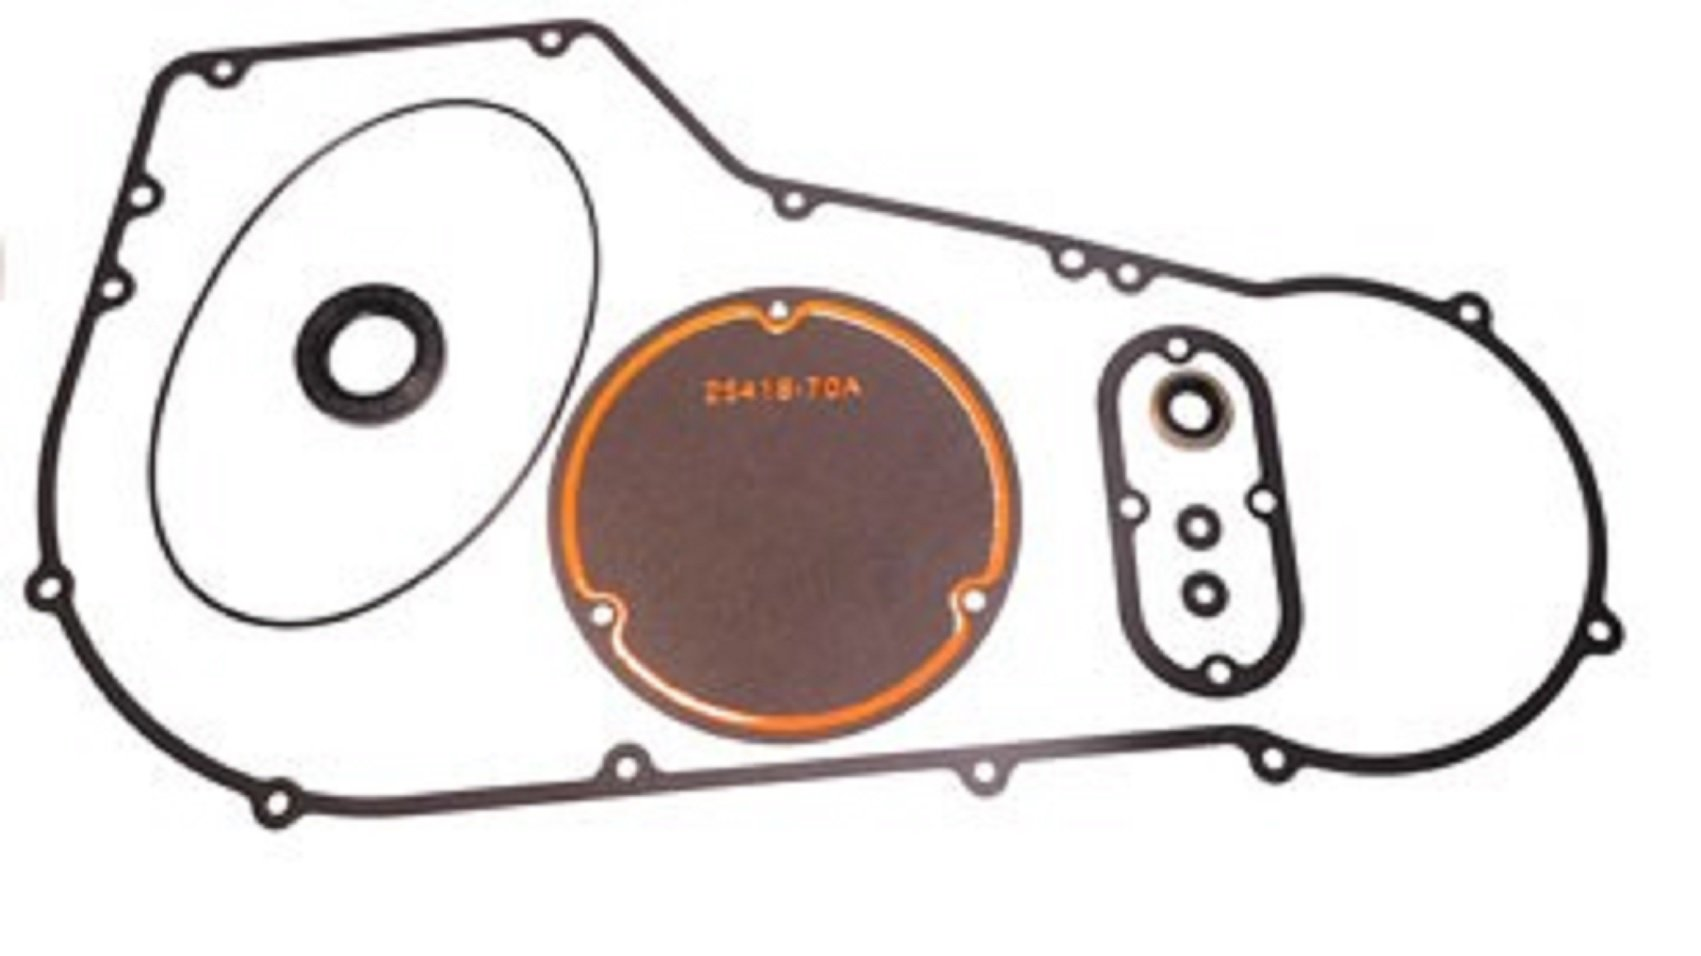 OCP PRIMARY GASKET KIT FOR HARLEY 1994-1998 Big Twin Evolution SOFTAIL Models DERBY,INSPECTION,SEALS by Orange Cycle Parts